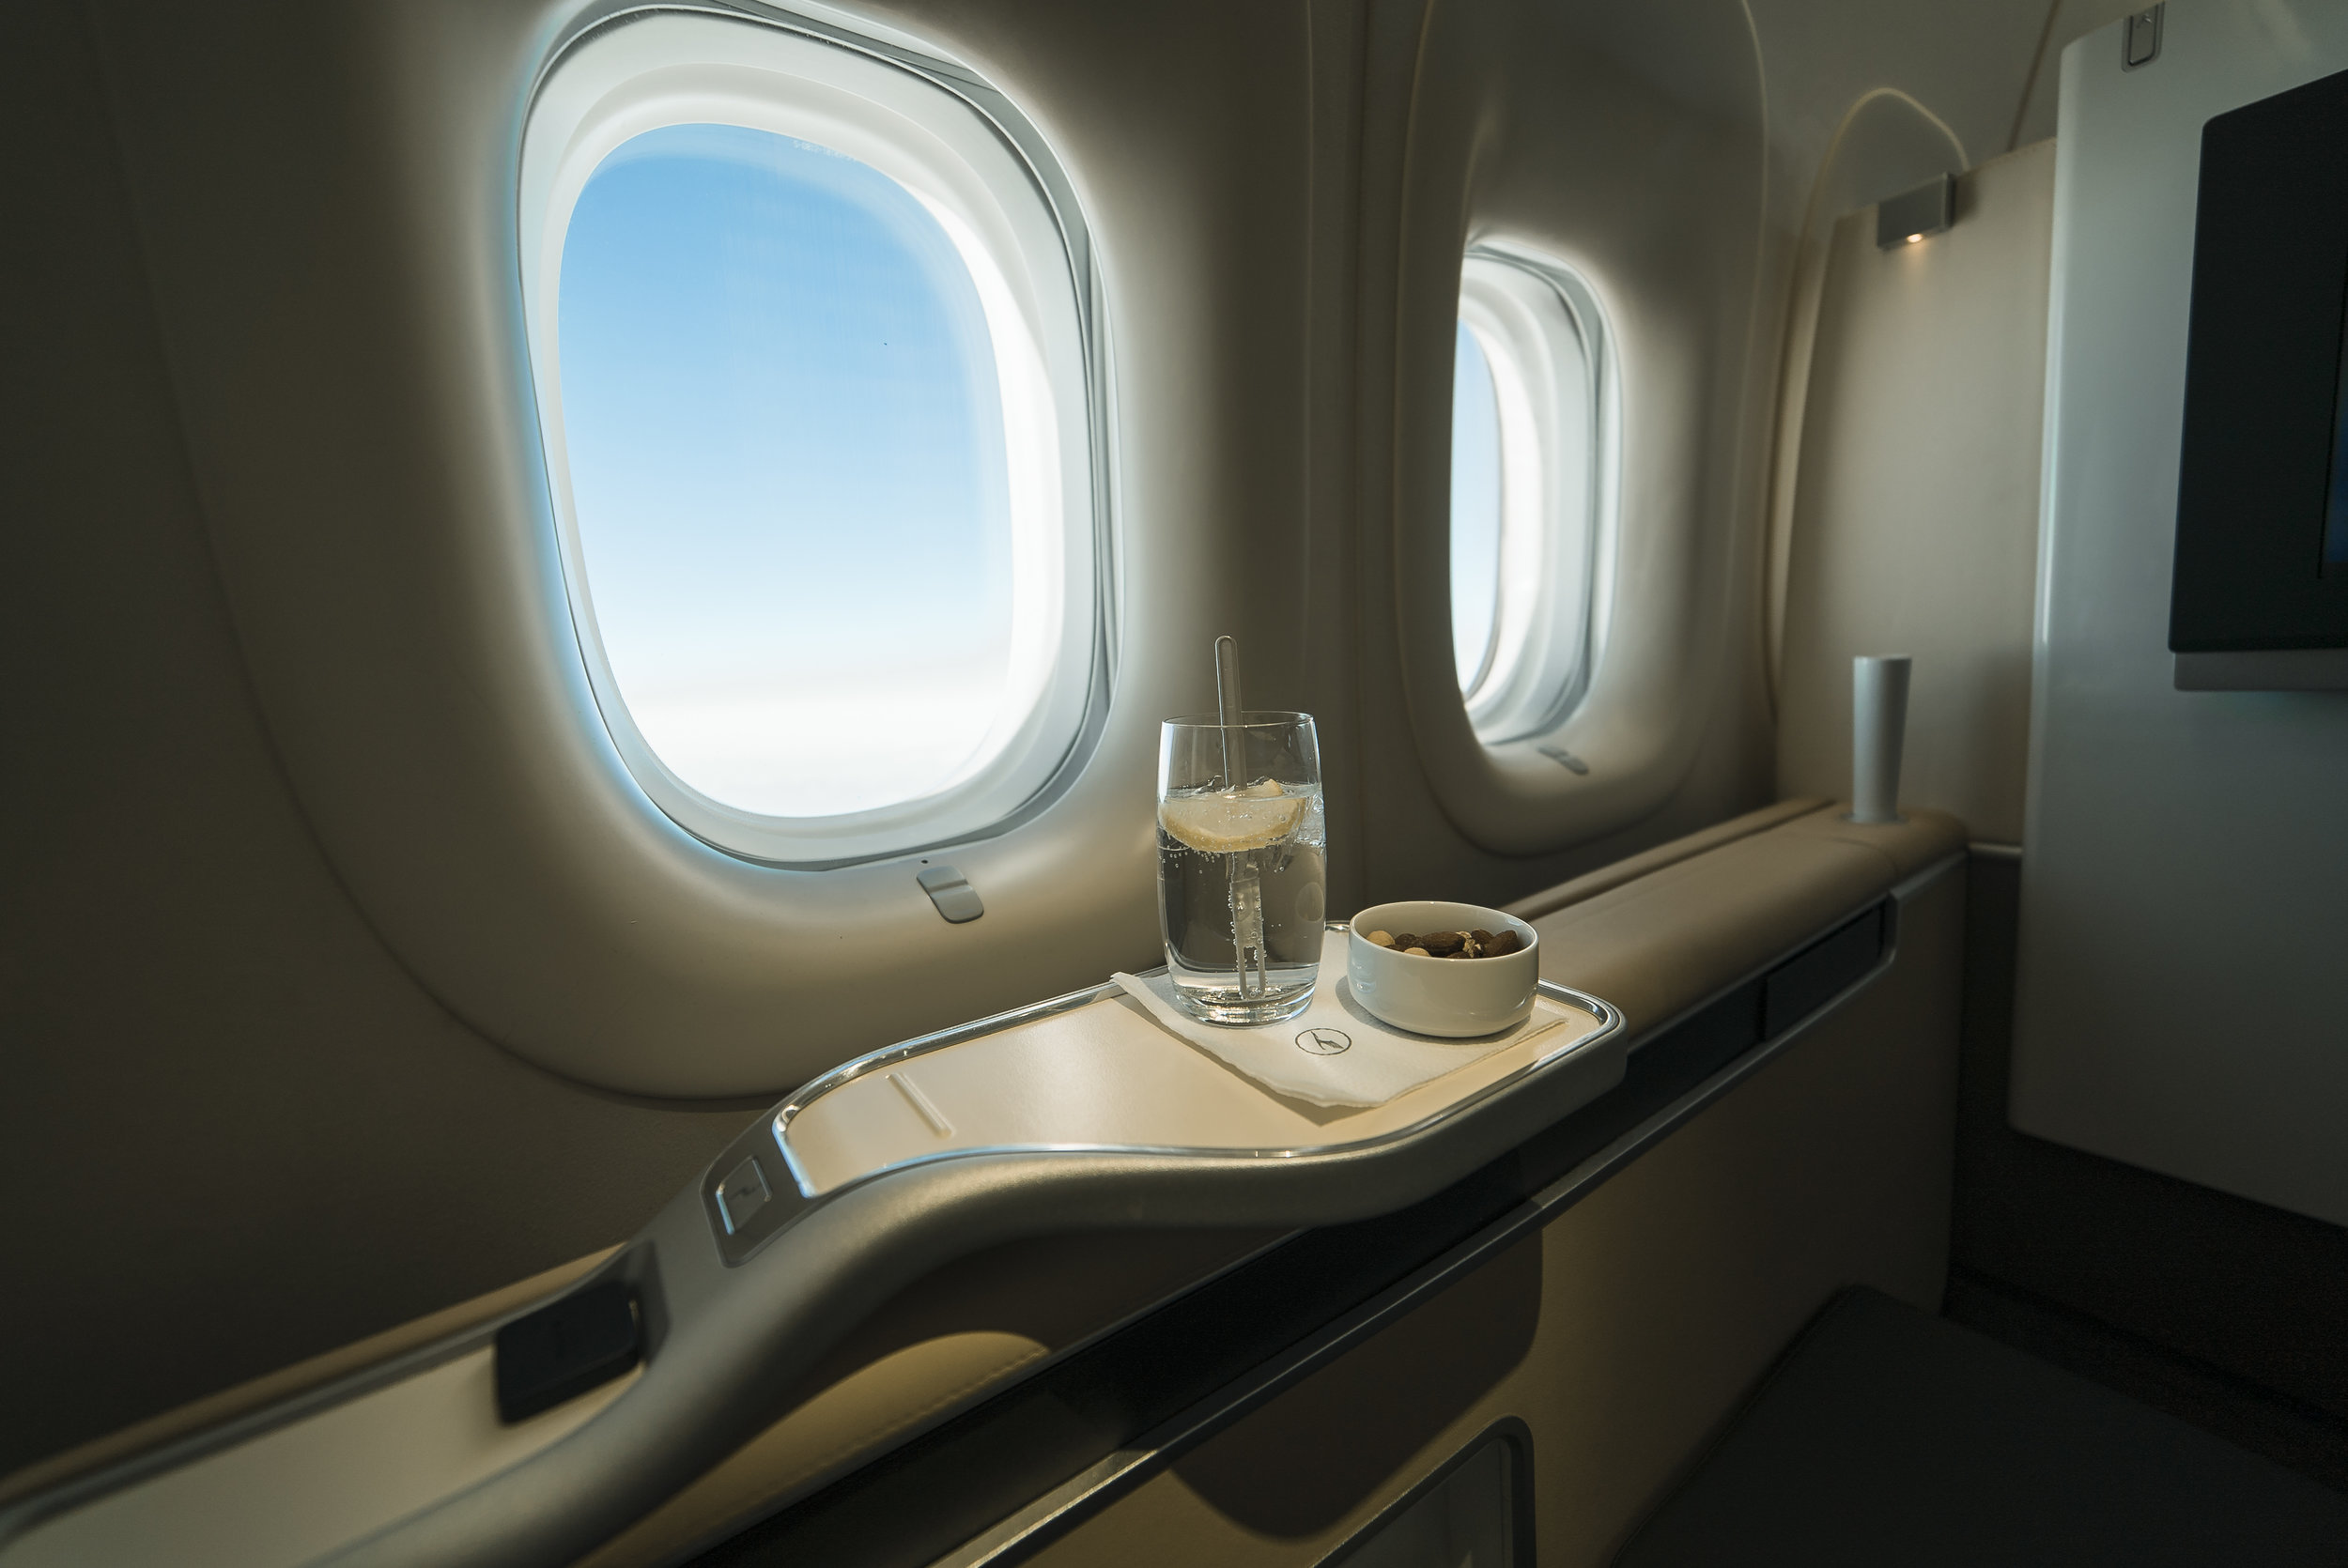 Flight Review - First class for business class prices, an unbeatable way to fly!